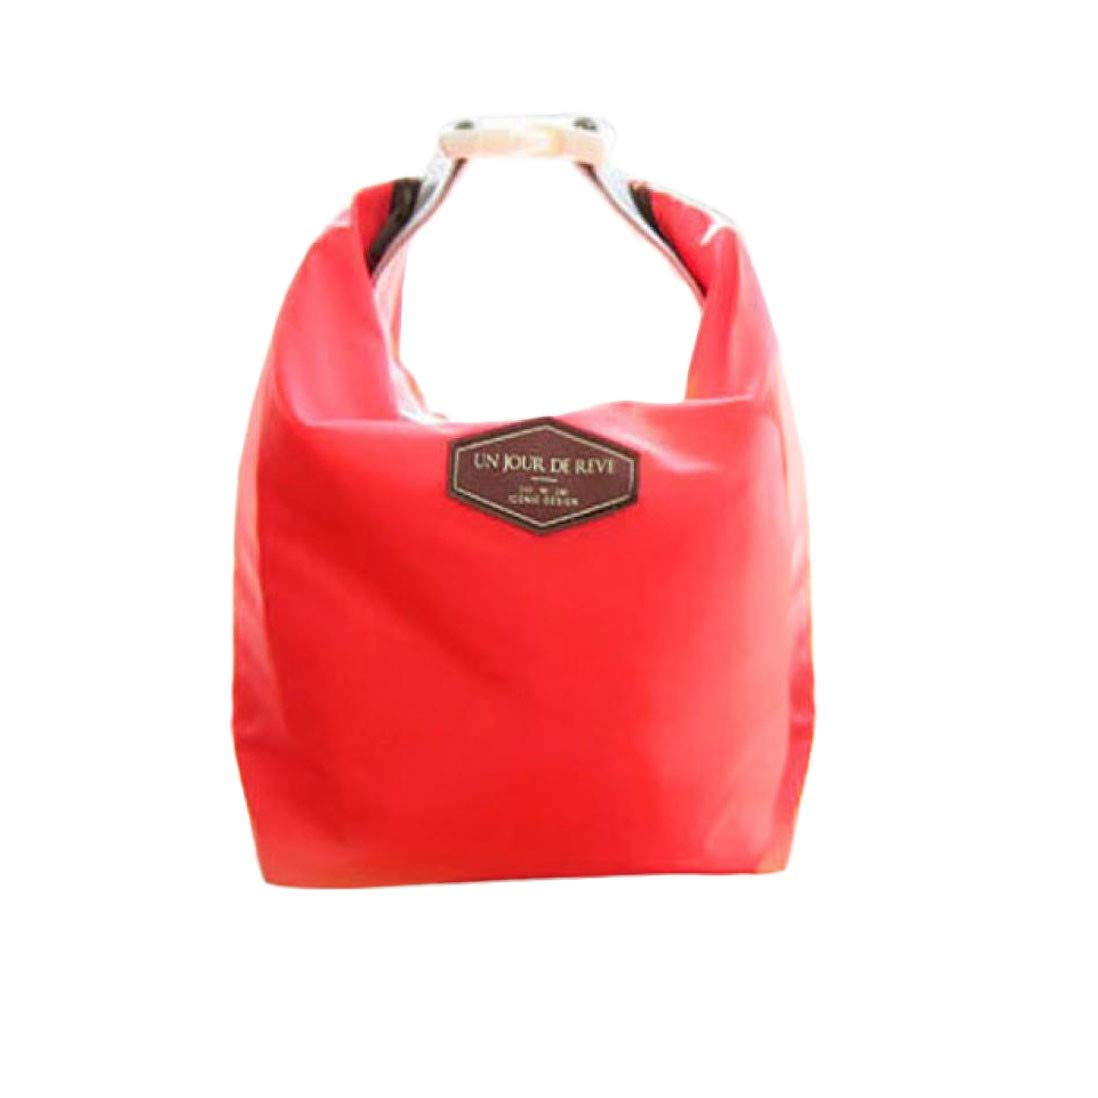 HighlifeS Lunch Bag Waterproof Thermal Fashion Cooler Insulated Lunch Box More Colors Portable Tote Storage Picnic Bags (Red)